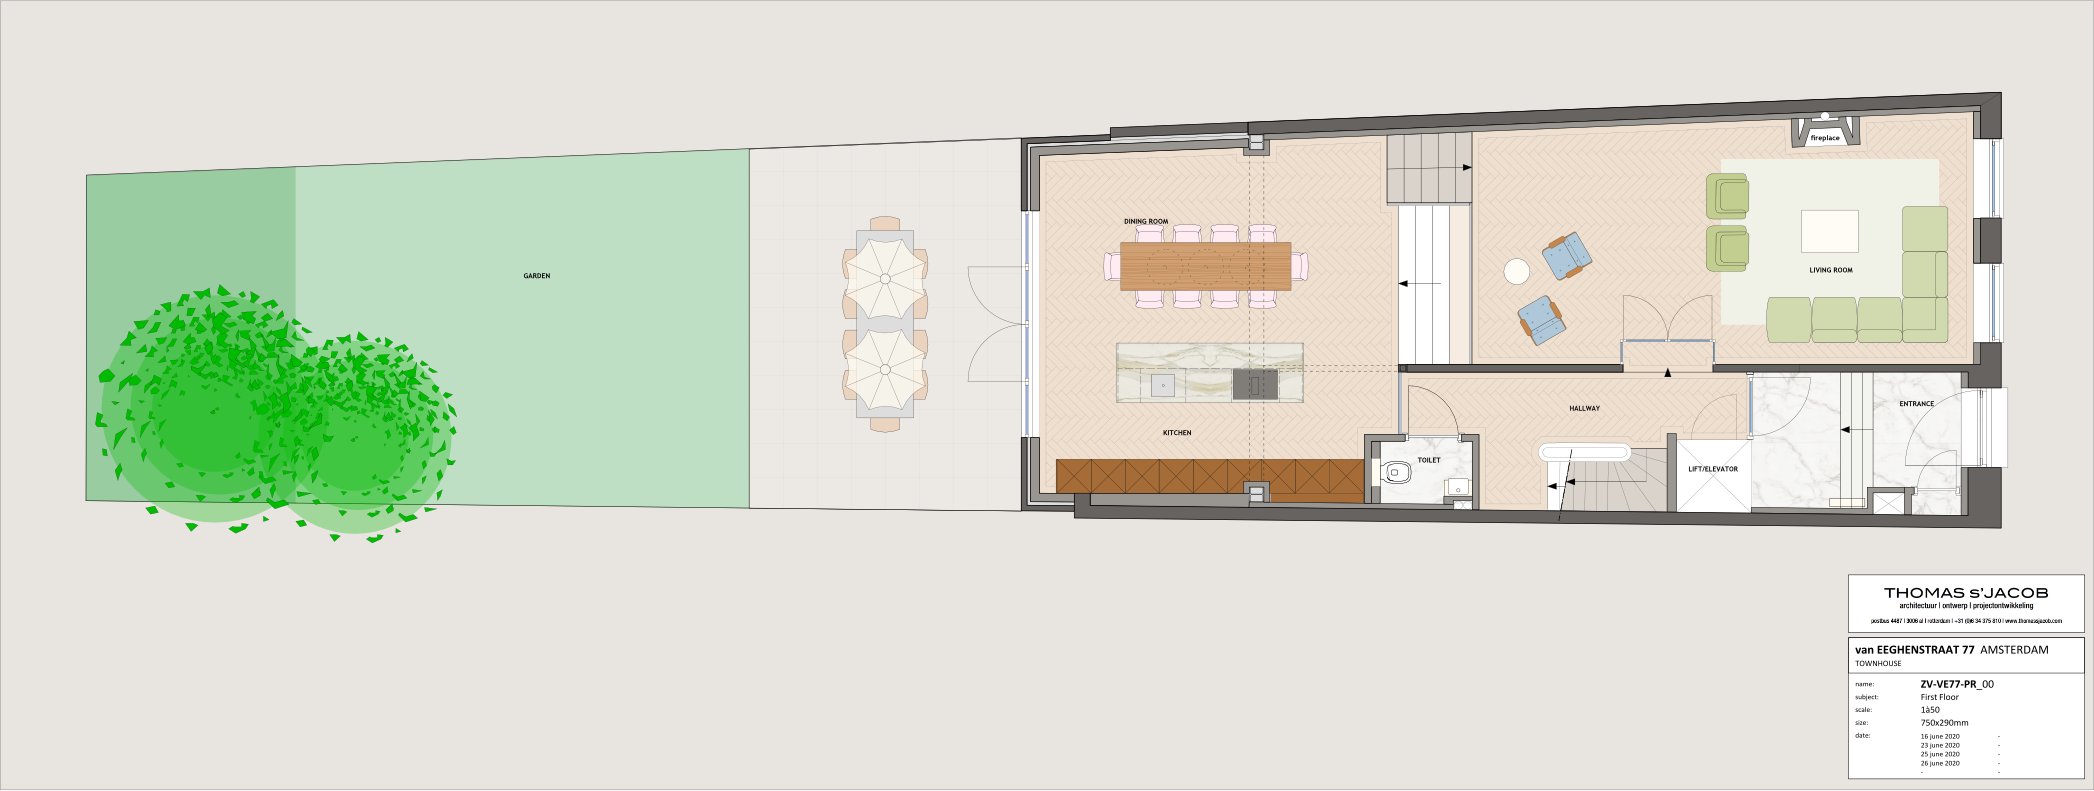 floor plan ven eeghenstraat 77 first floor